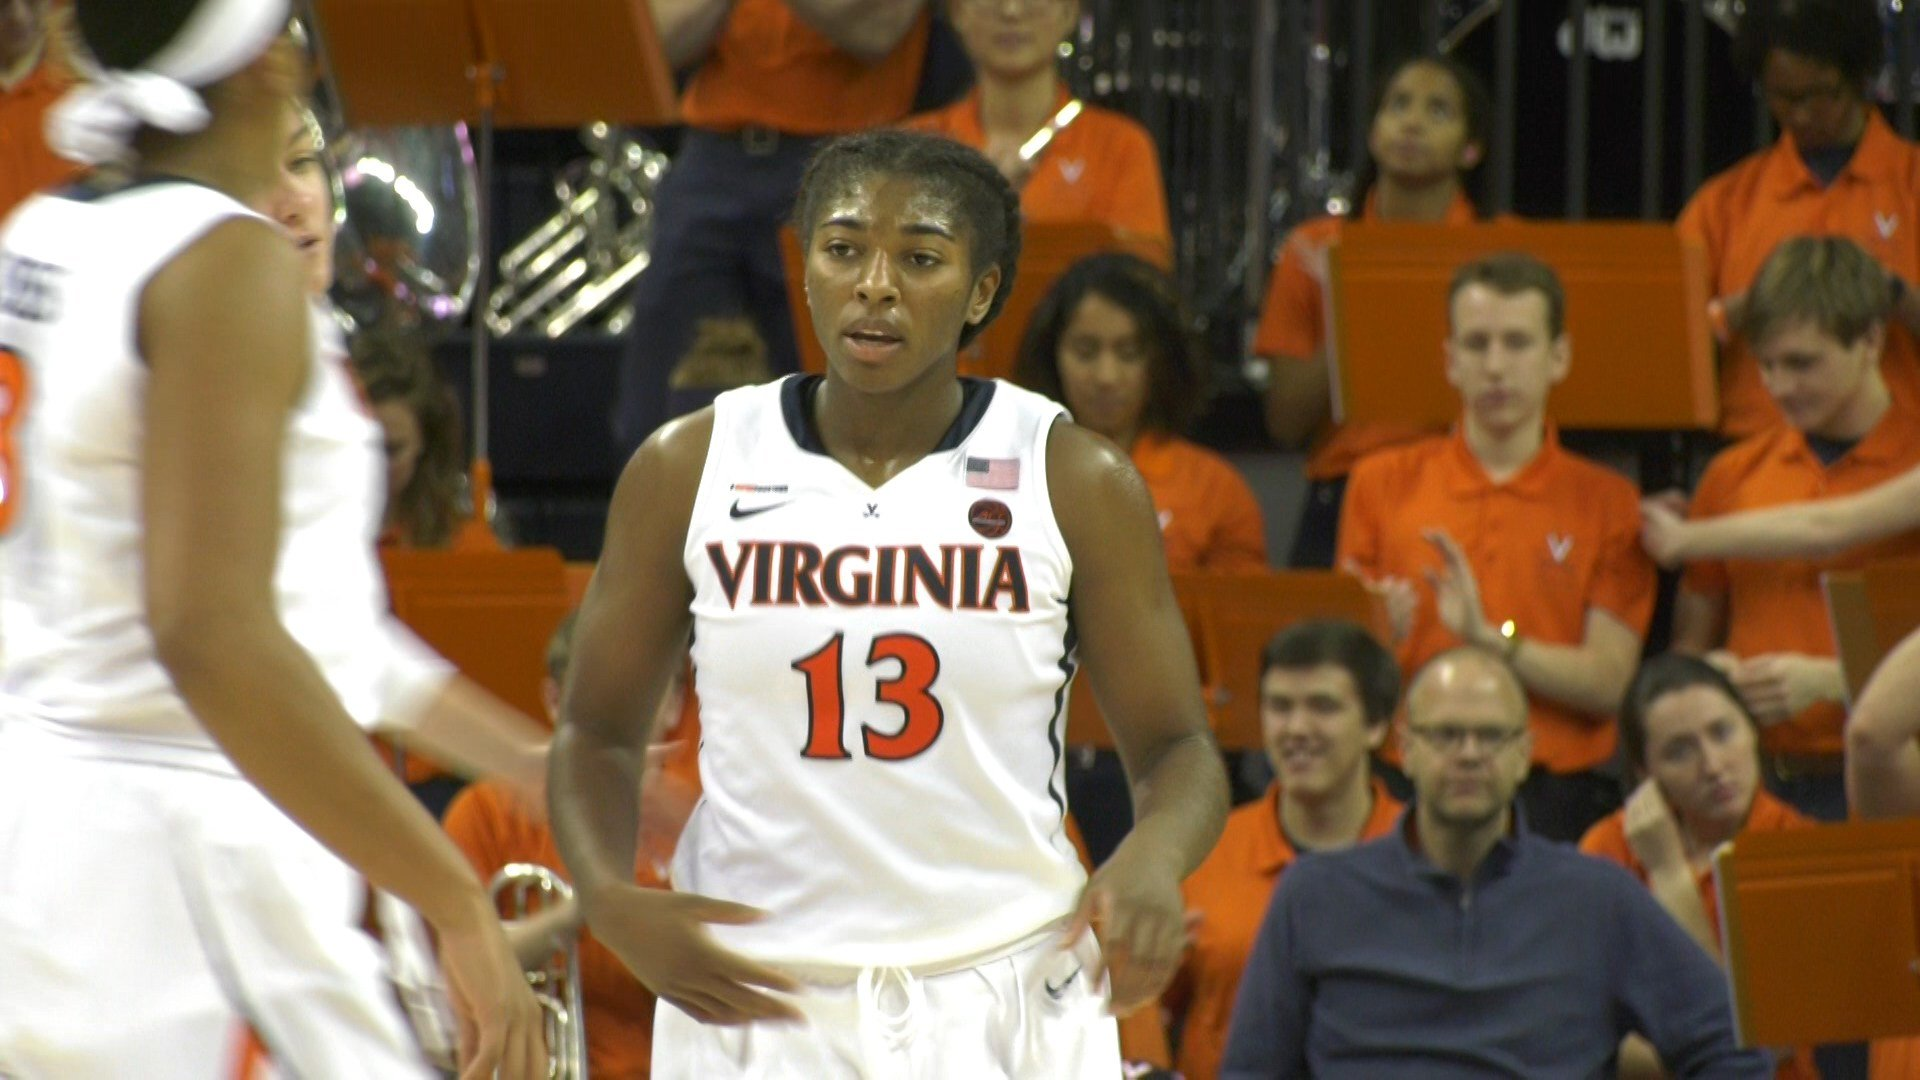 Sophomore guard Jocelyn Willoughby led the 'Hoos with 16 points